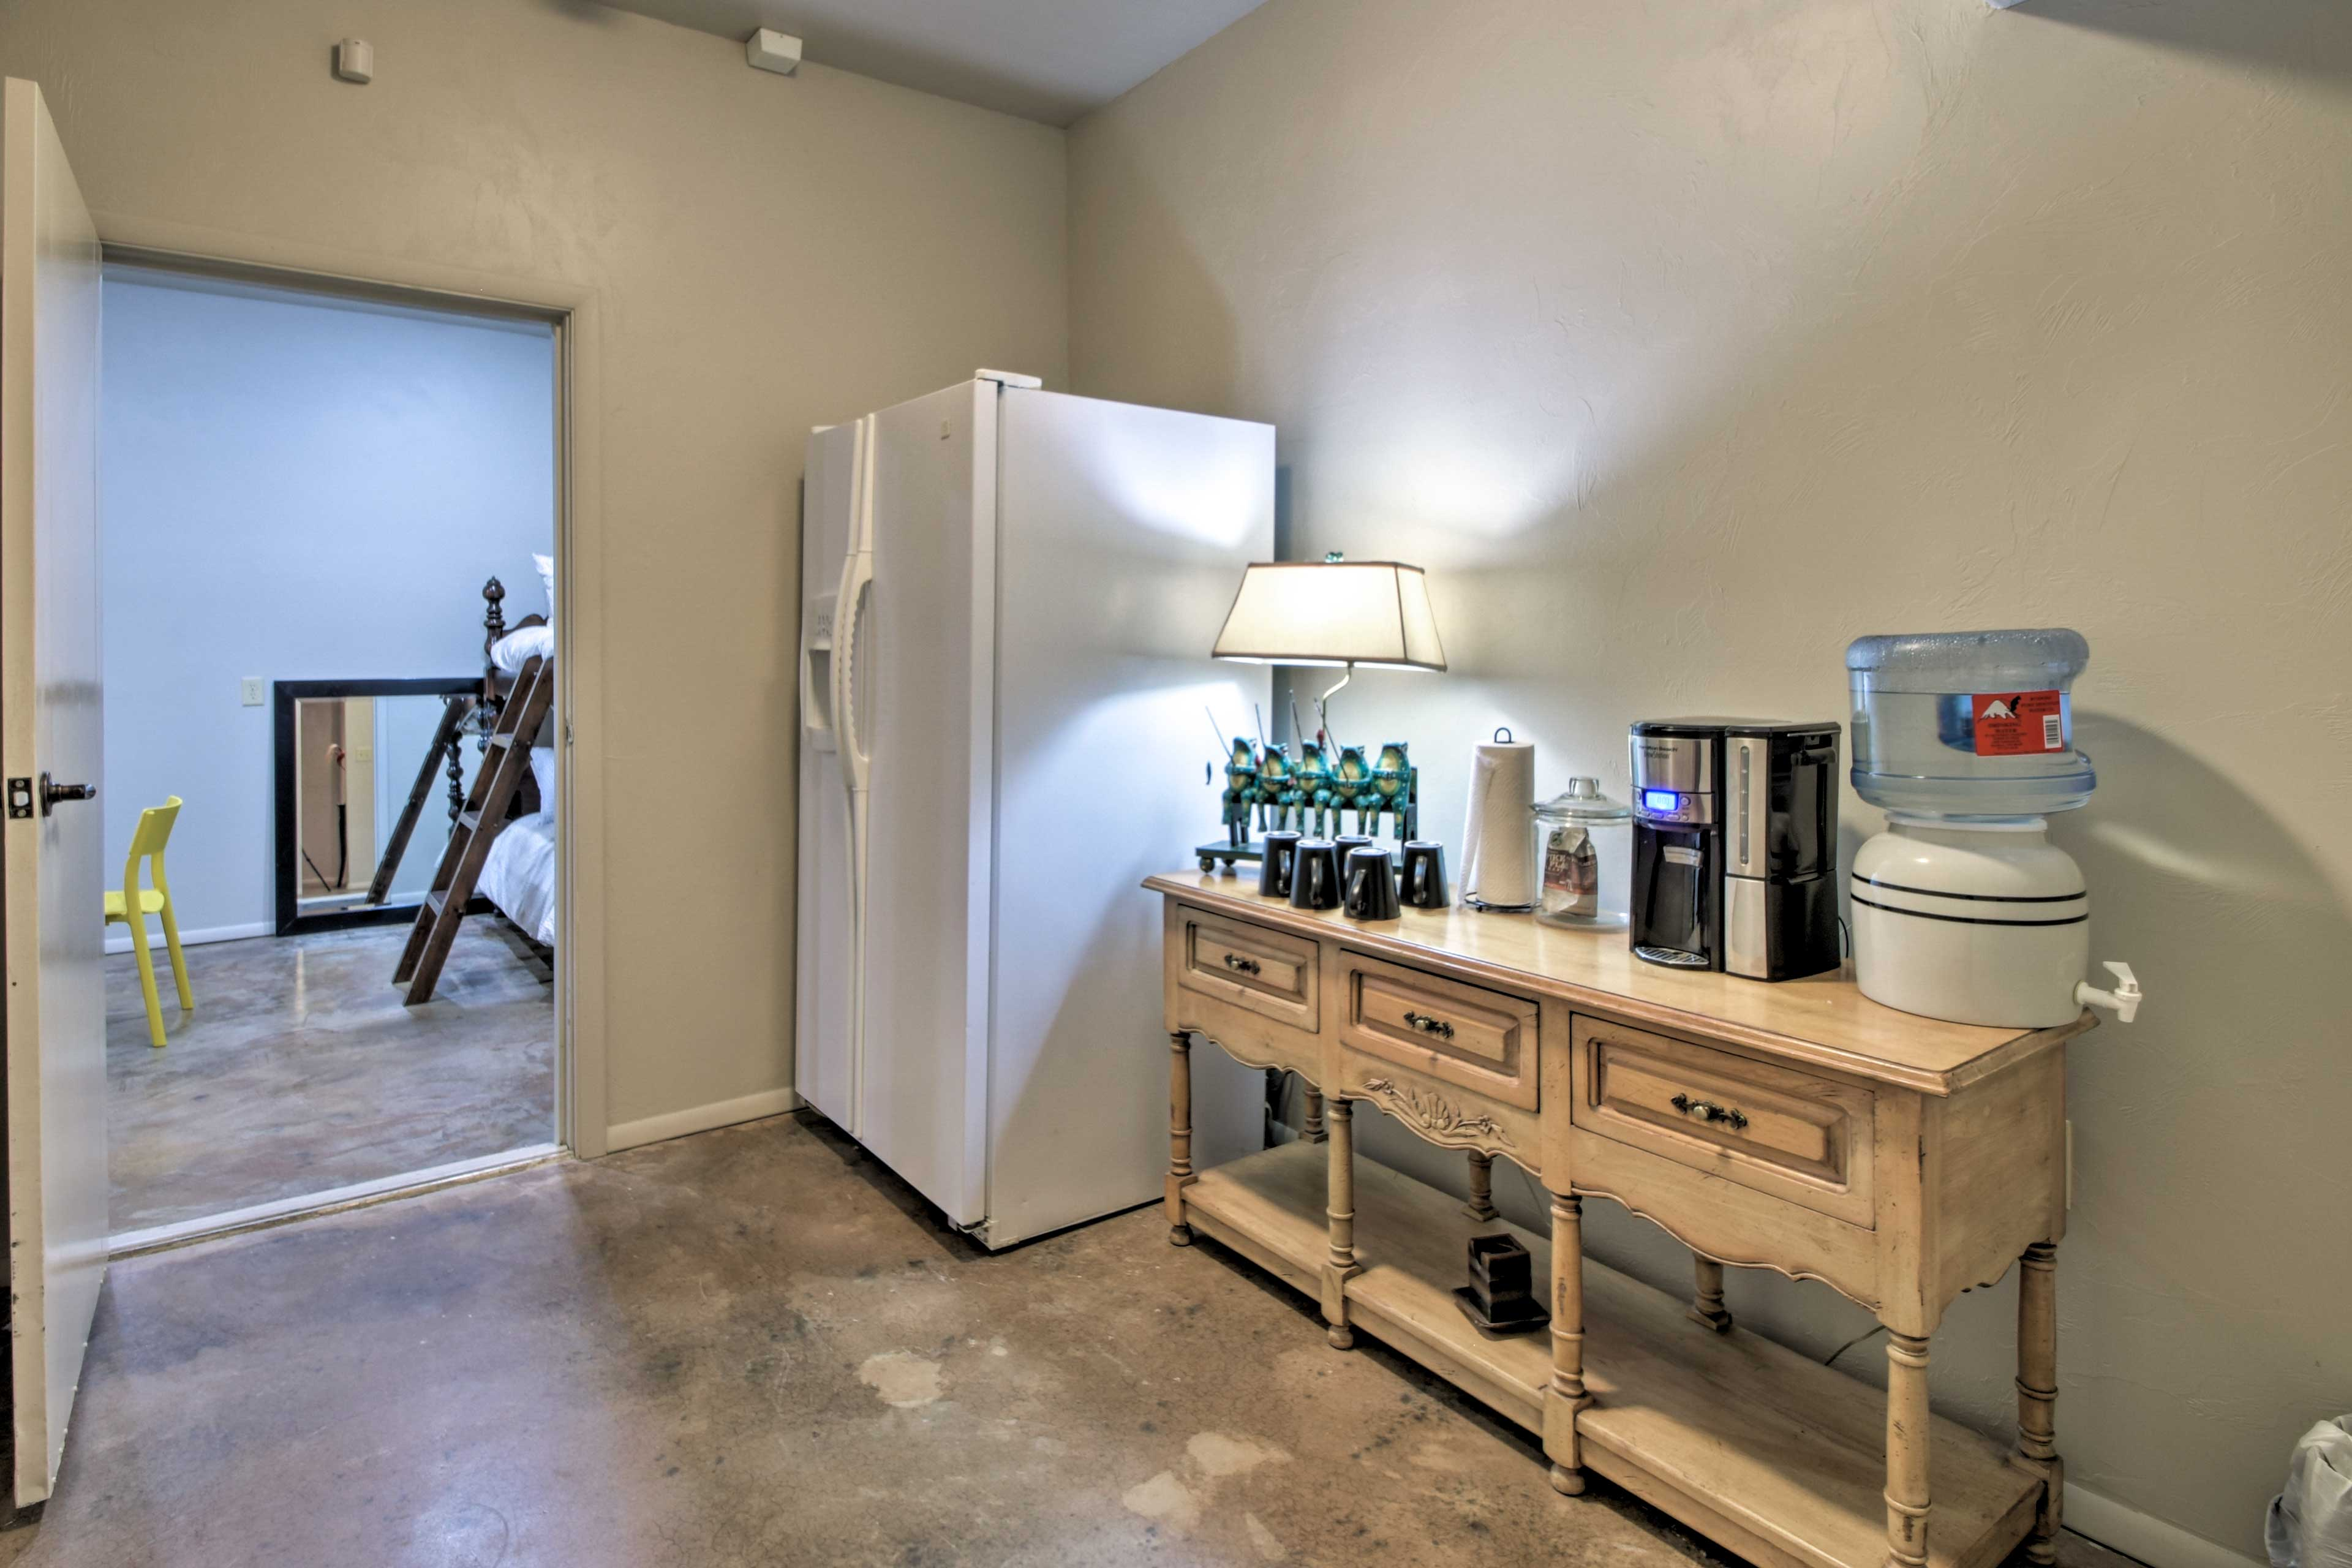 The downstairs area features water, coffee and a refrigerator!